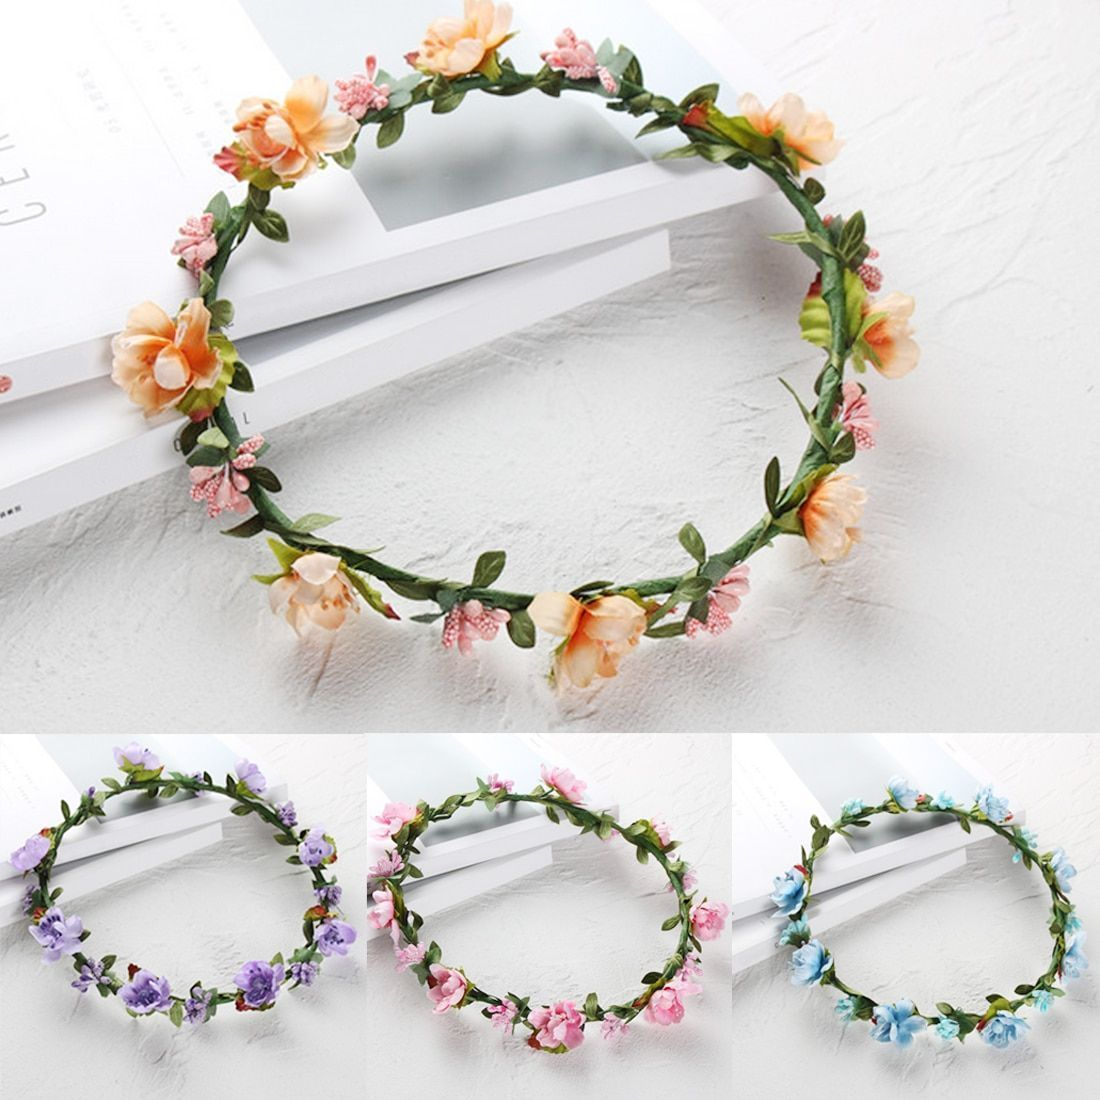 Hair Accessories Flower Crown Bride Artificial Plastic Flower Head Wreath For Hair Floral Headband 11 colors available    !!!Attention!!! valid discount 30.99% buy now for: 1.47$ #flowerheadwreaths Hair Accessories Flower Crown Bride Artificial Plastic Flower Head Wreath For Hair Floral Headband 11 colors available    !!!Attention!!! valid discount 30.99% buy now for: 1.47$ #flowerheadwreaths Hair Accessories Flower Crown Bride Artificial Plastic Flower Head Wreath For Hair Floral Headband 11 co #flowerheadwreaths